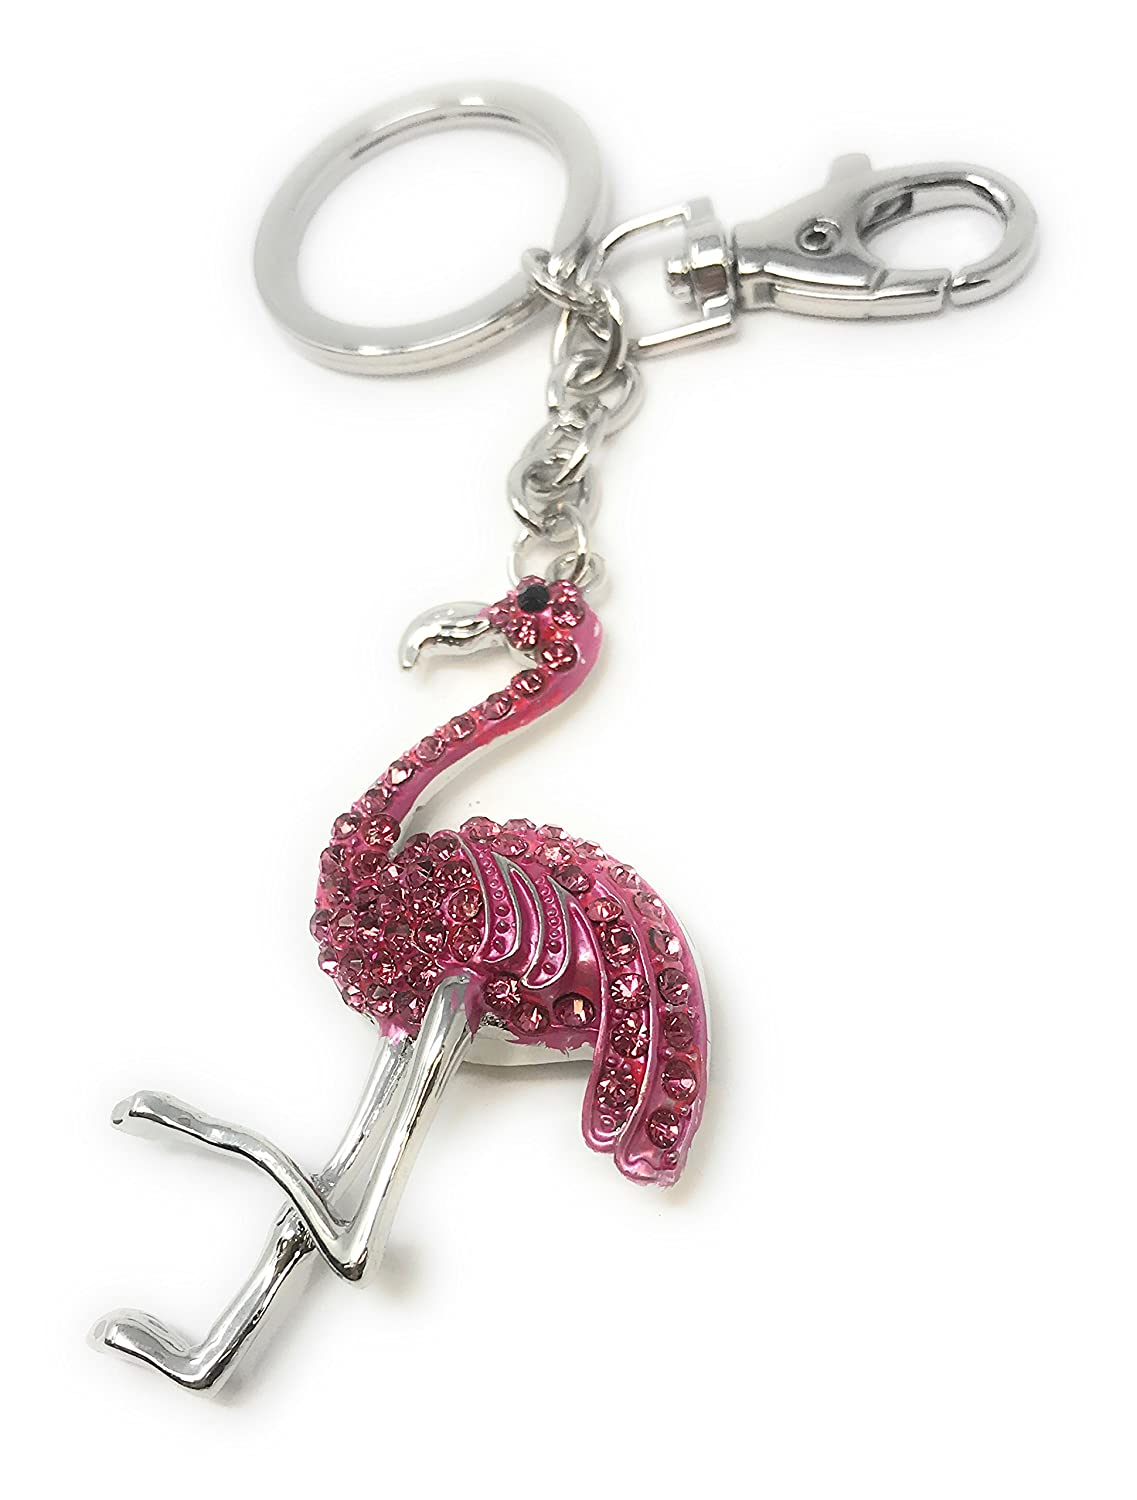 Covered in Pink Crystals Kubla Craft Flamingo Key Chain Purse Jewelry 5.5 Inches Long